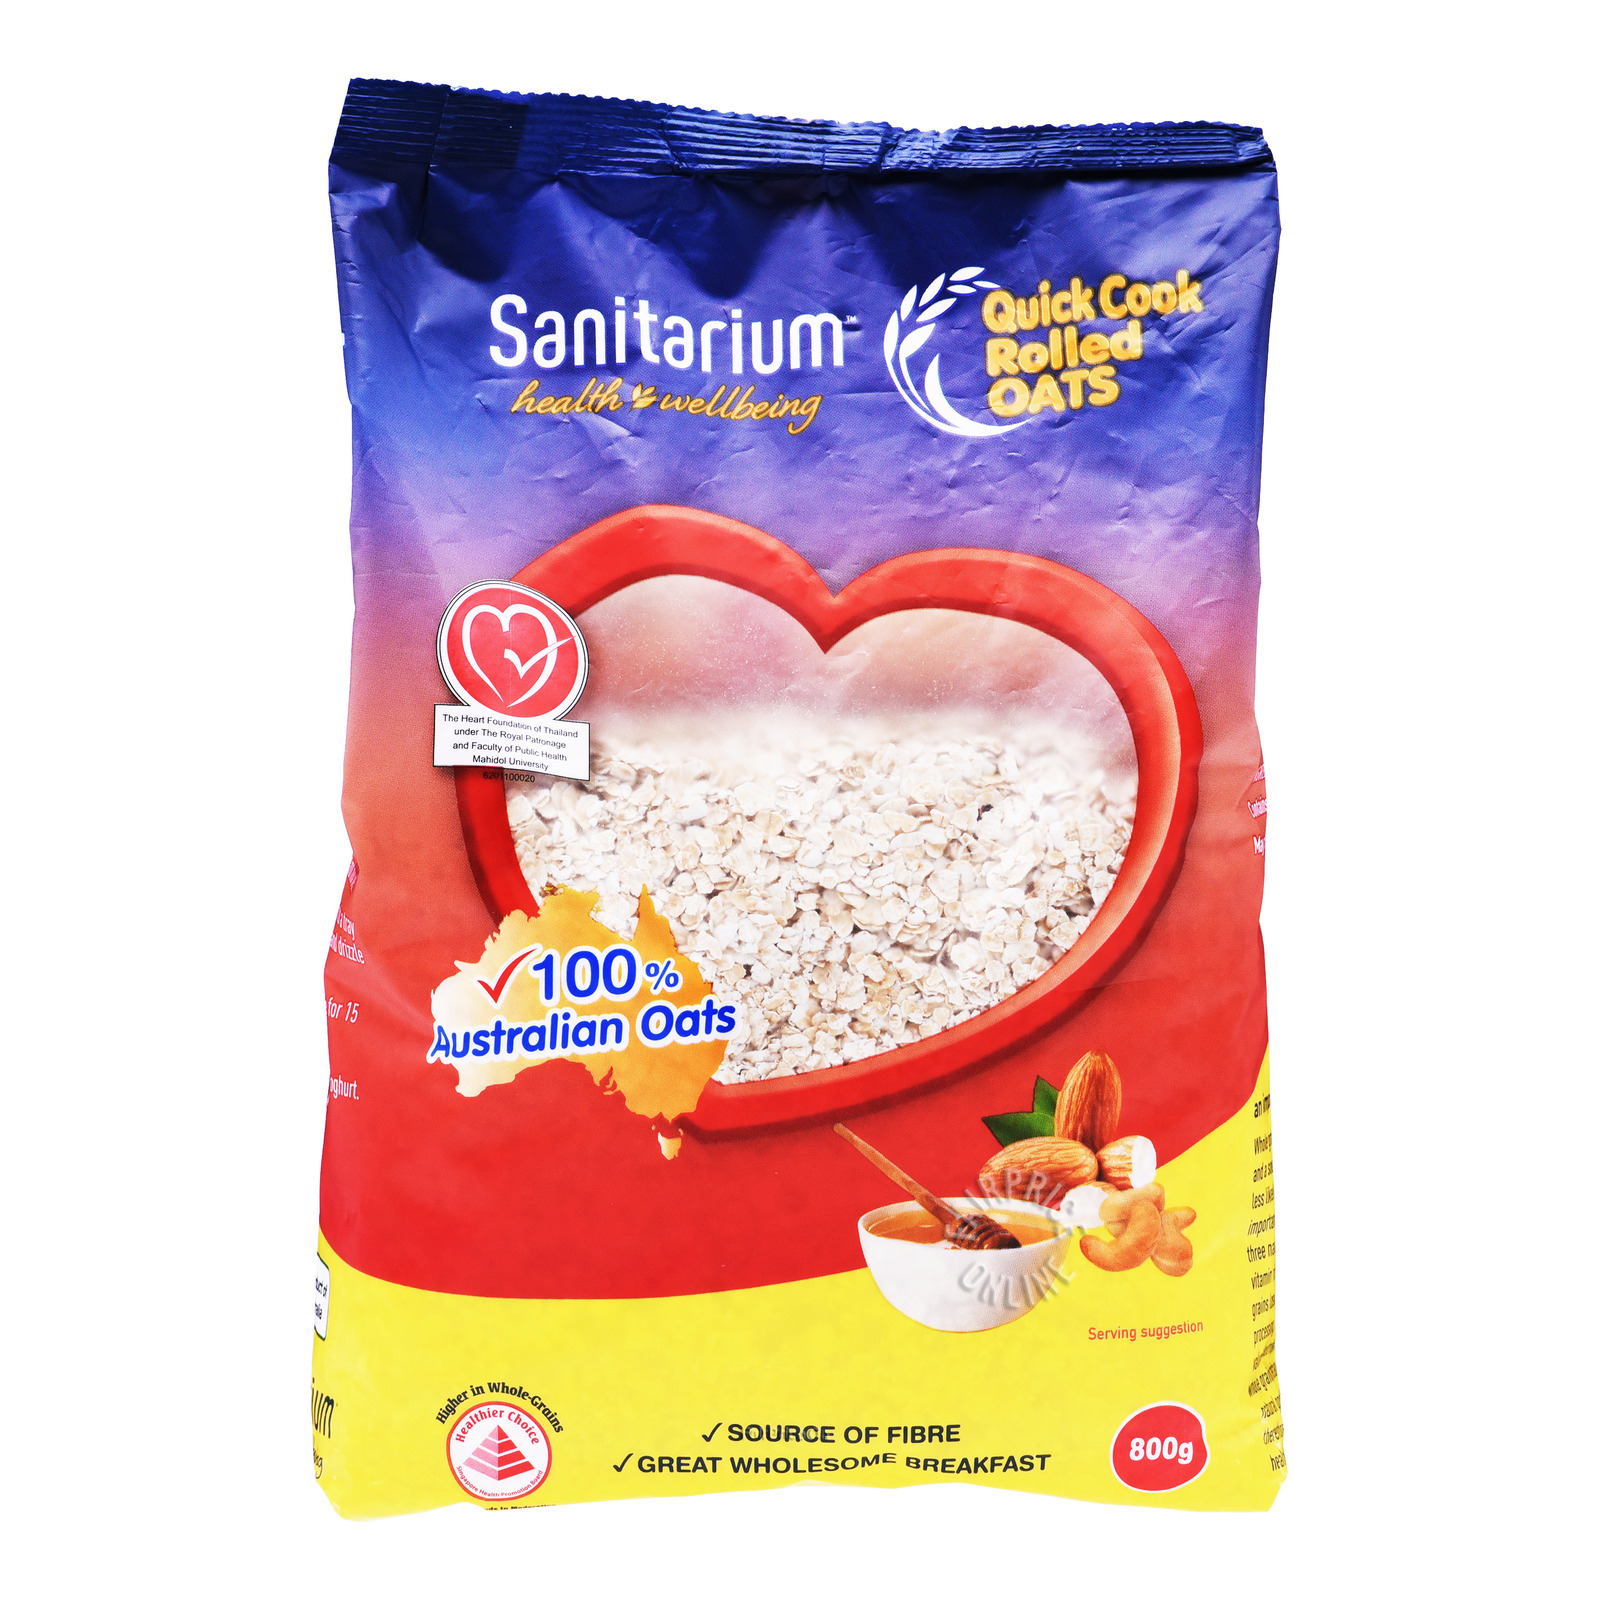 Sanitarium Oats - Quick Cook